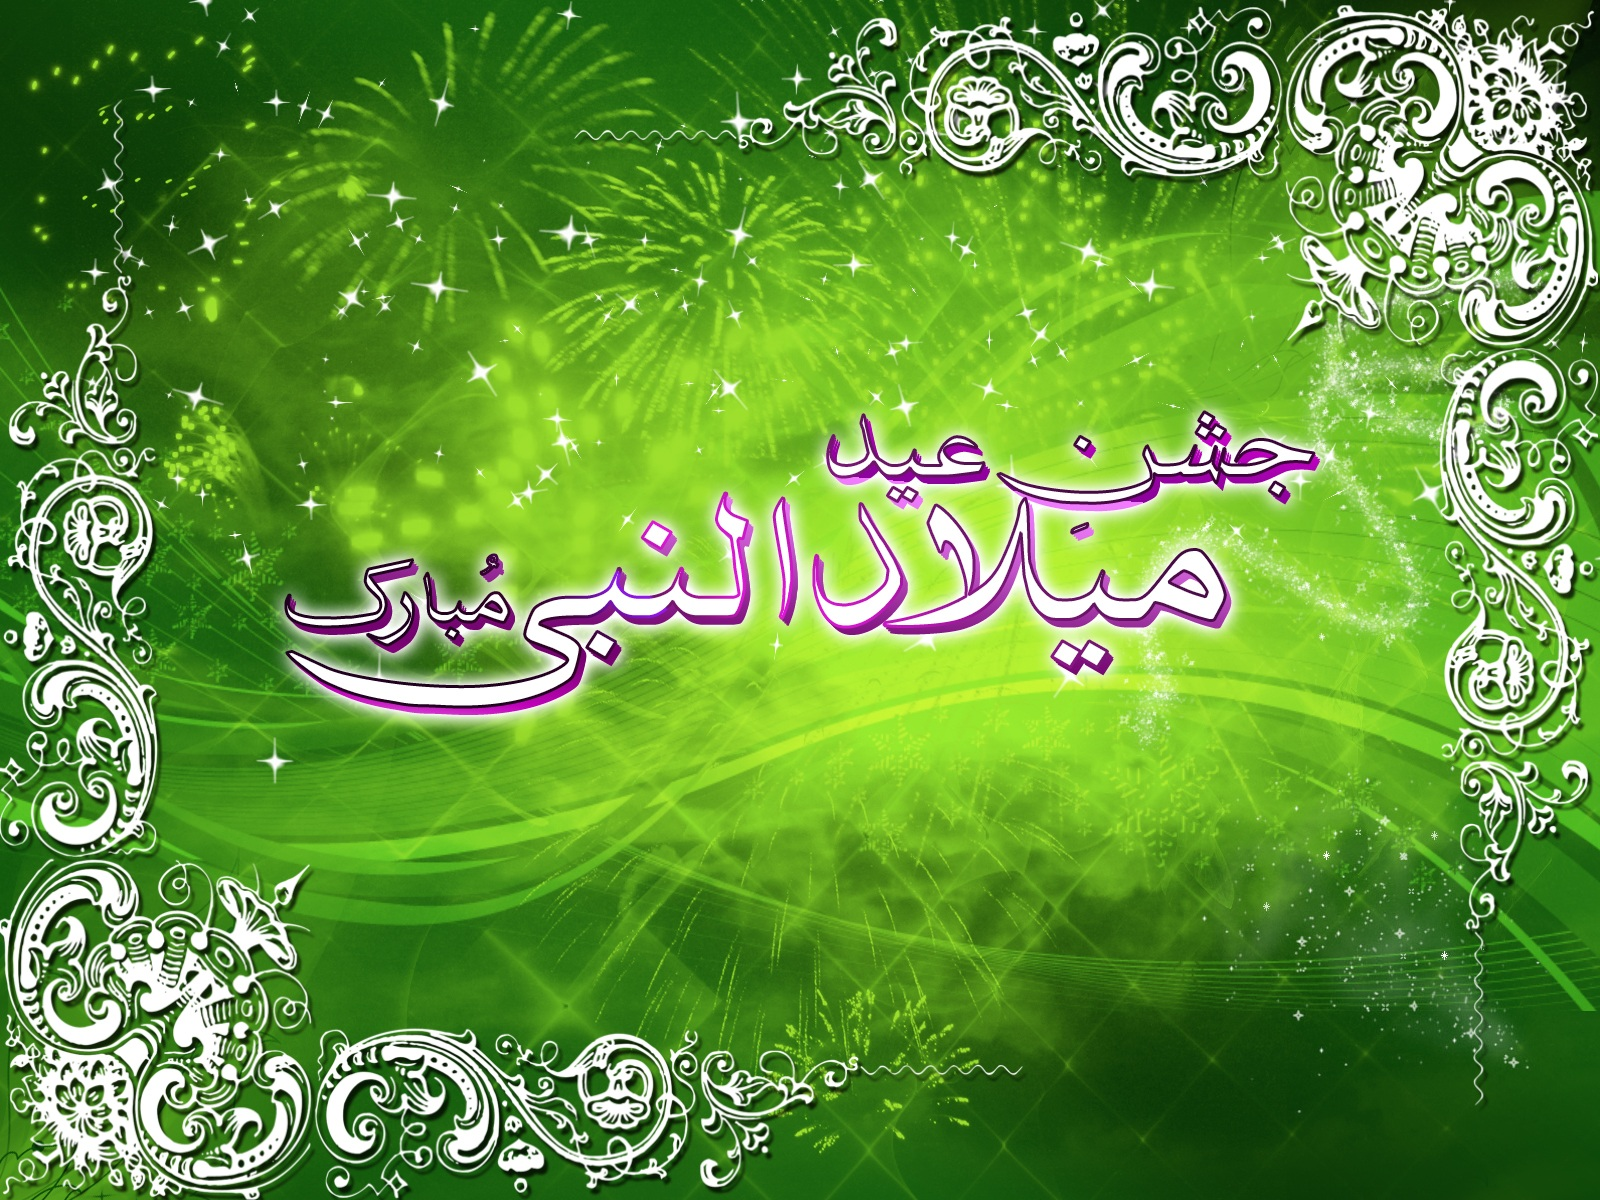 Eid+Milad+un+Nabi+Muhammad+BirthDay+Celebration+15.jpg